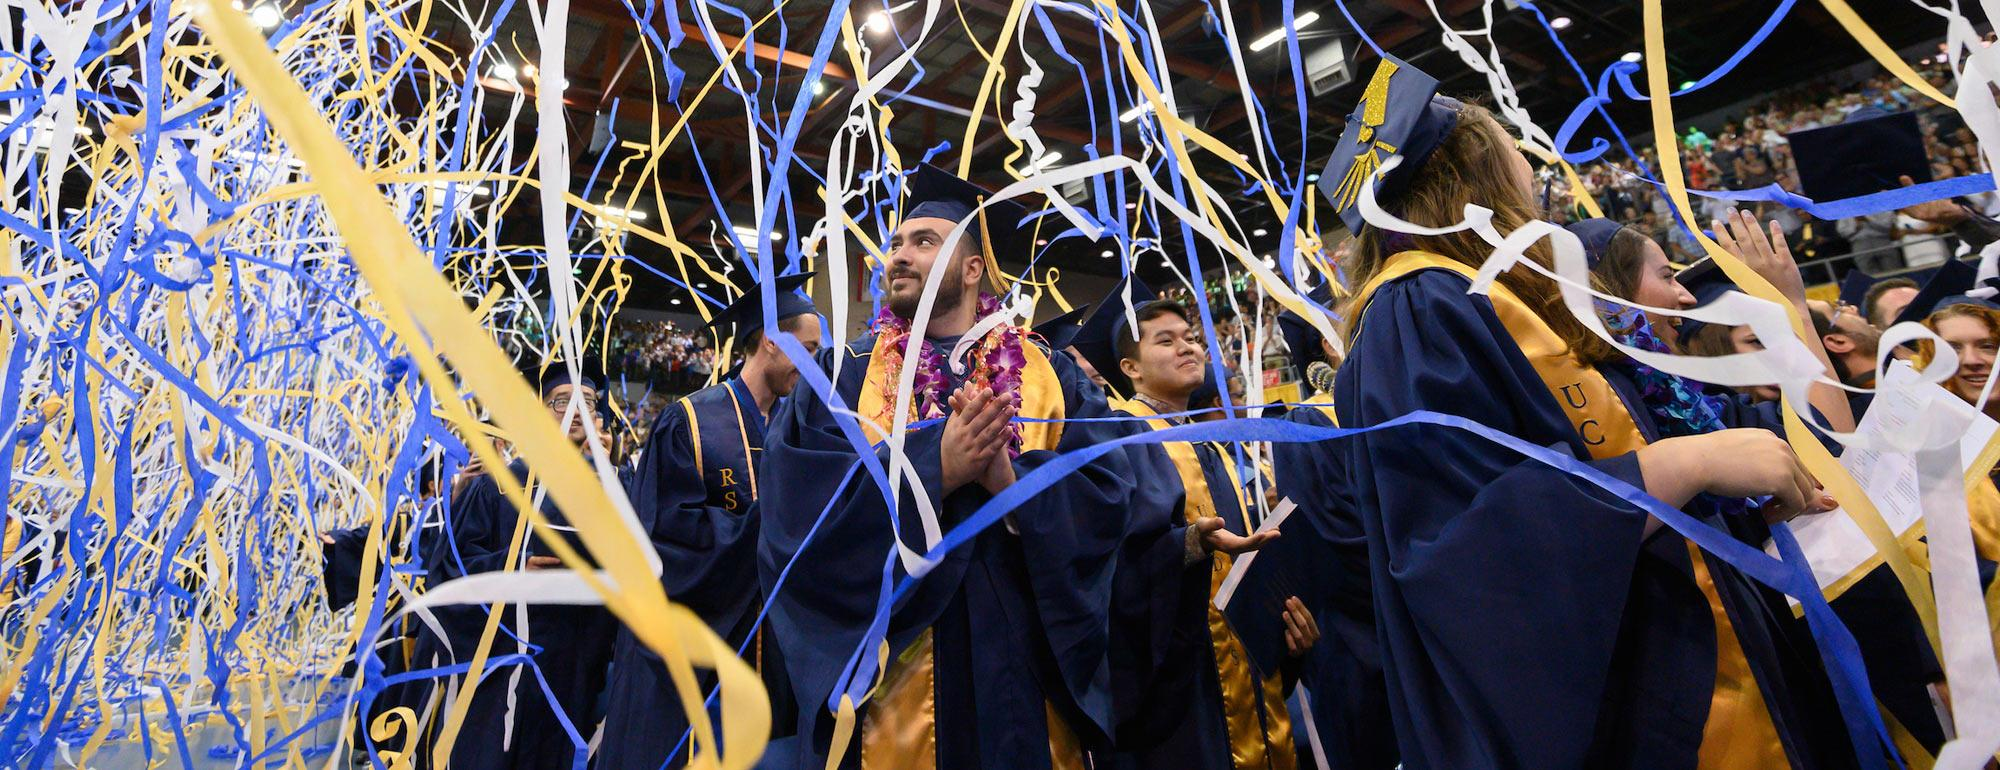 Students celebrating at commencement while streamers fall from the ceiling